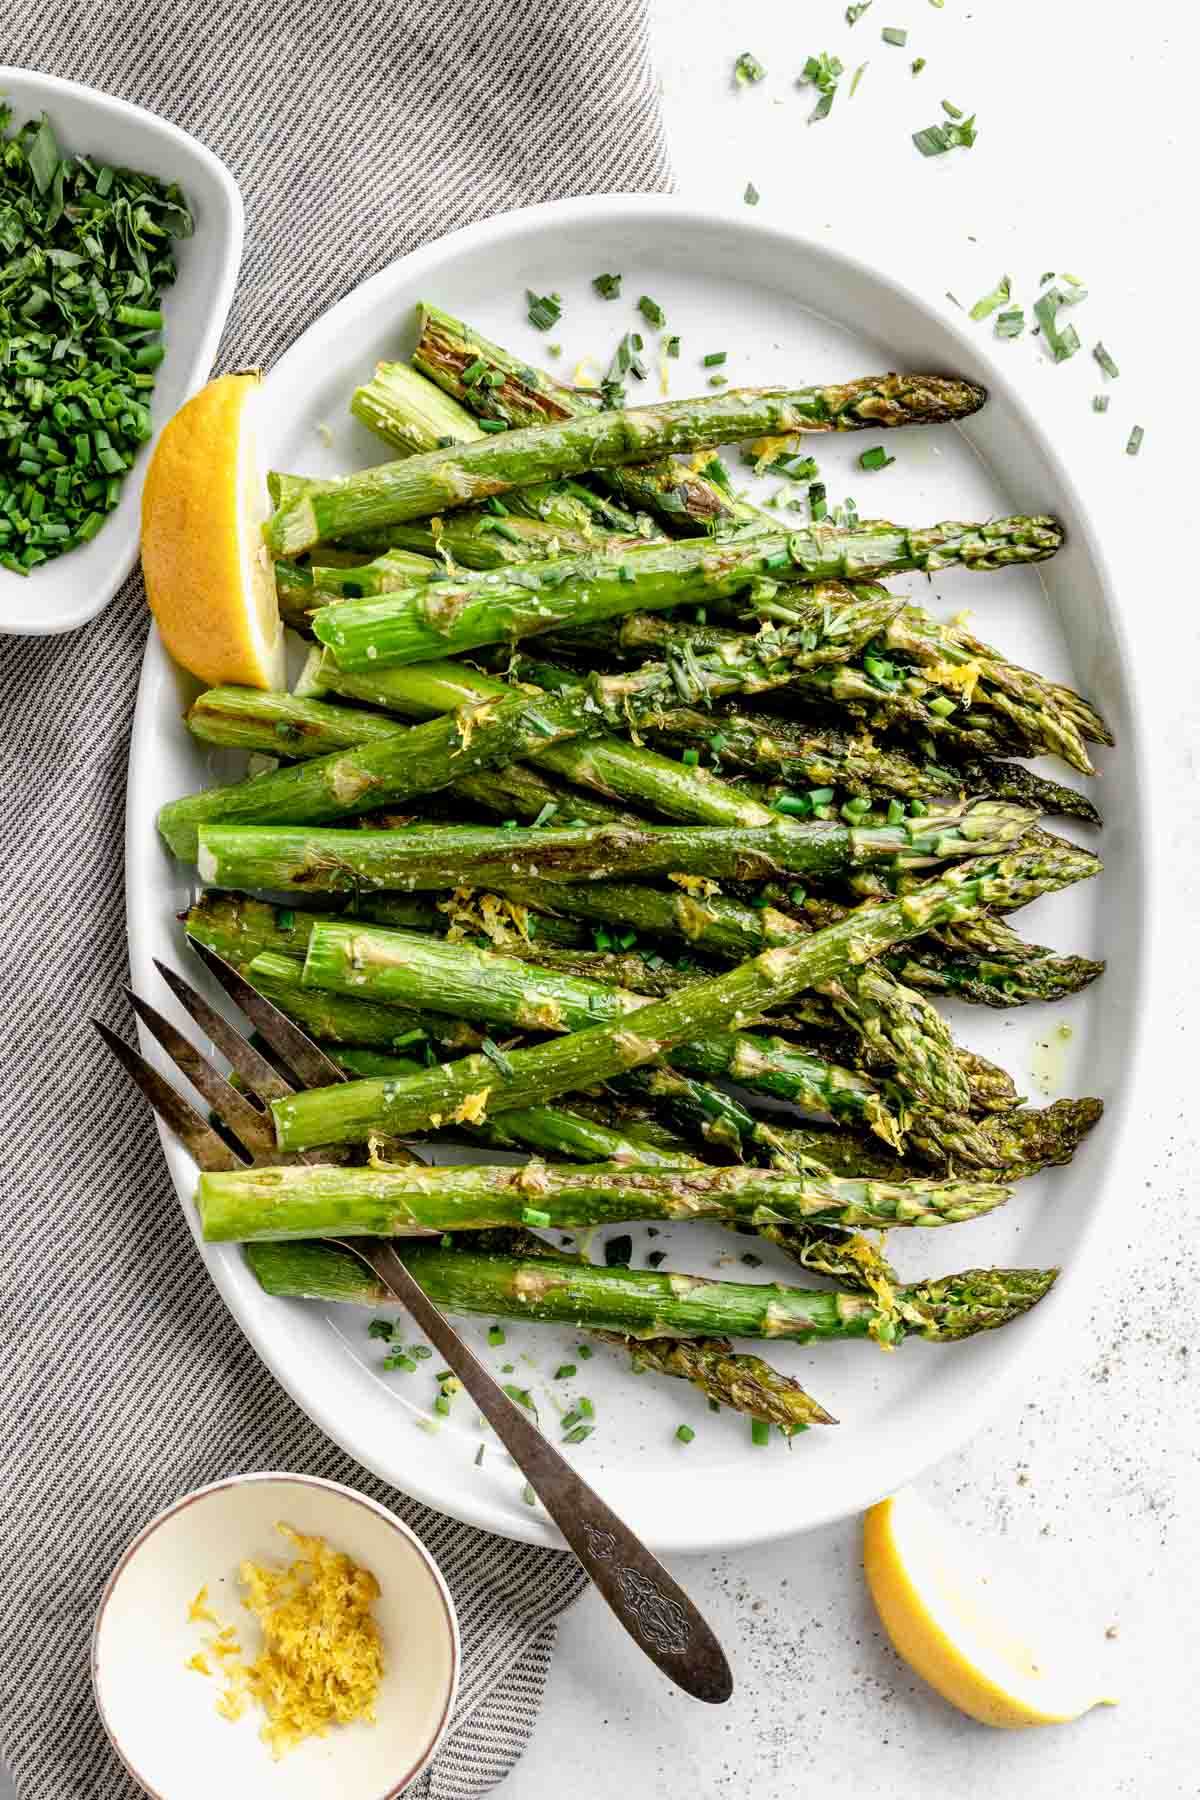 a platter of roasted asparagus with lemon zest, herbs and lemon wedges